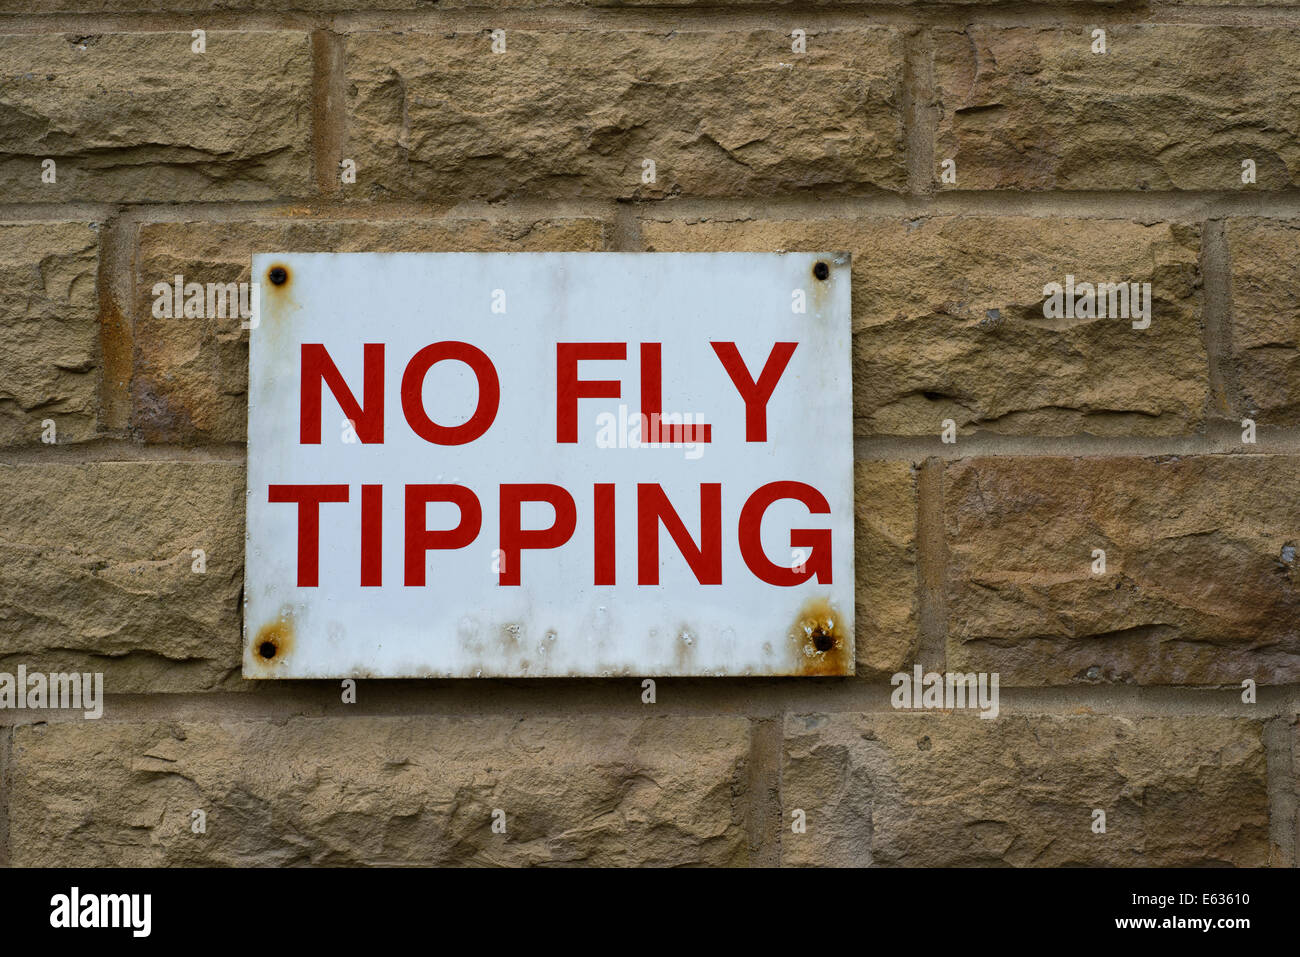 No Fly Tipping sign on wall - Stock Image